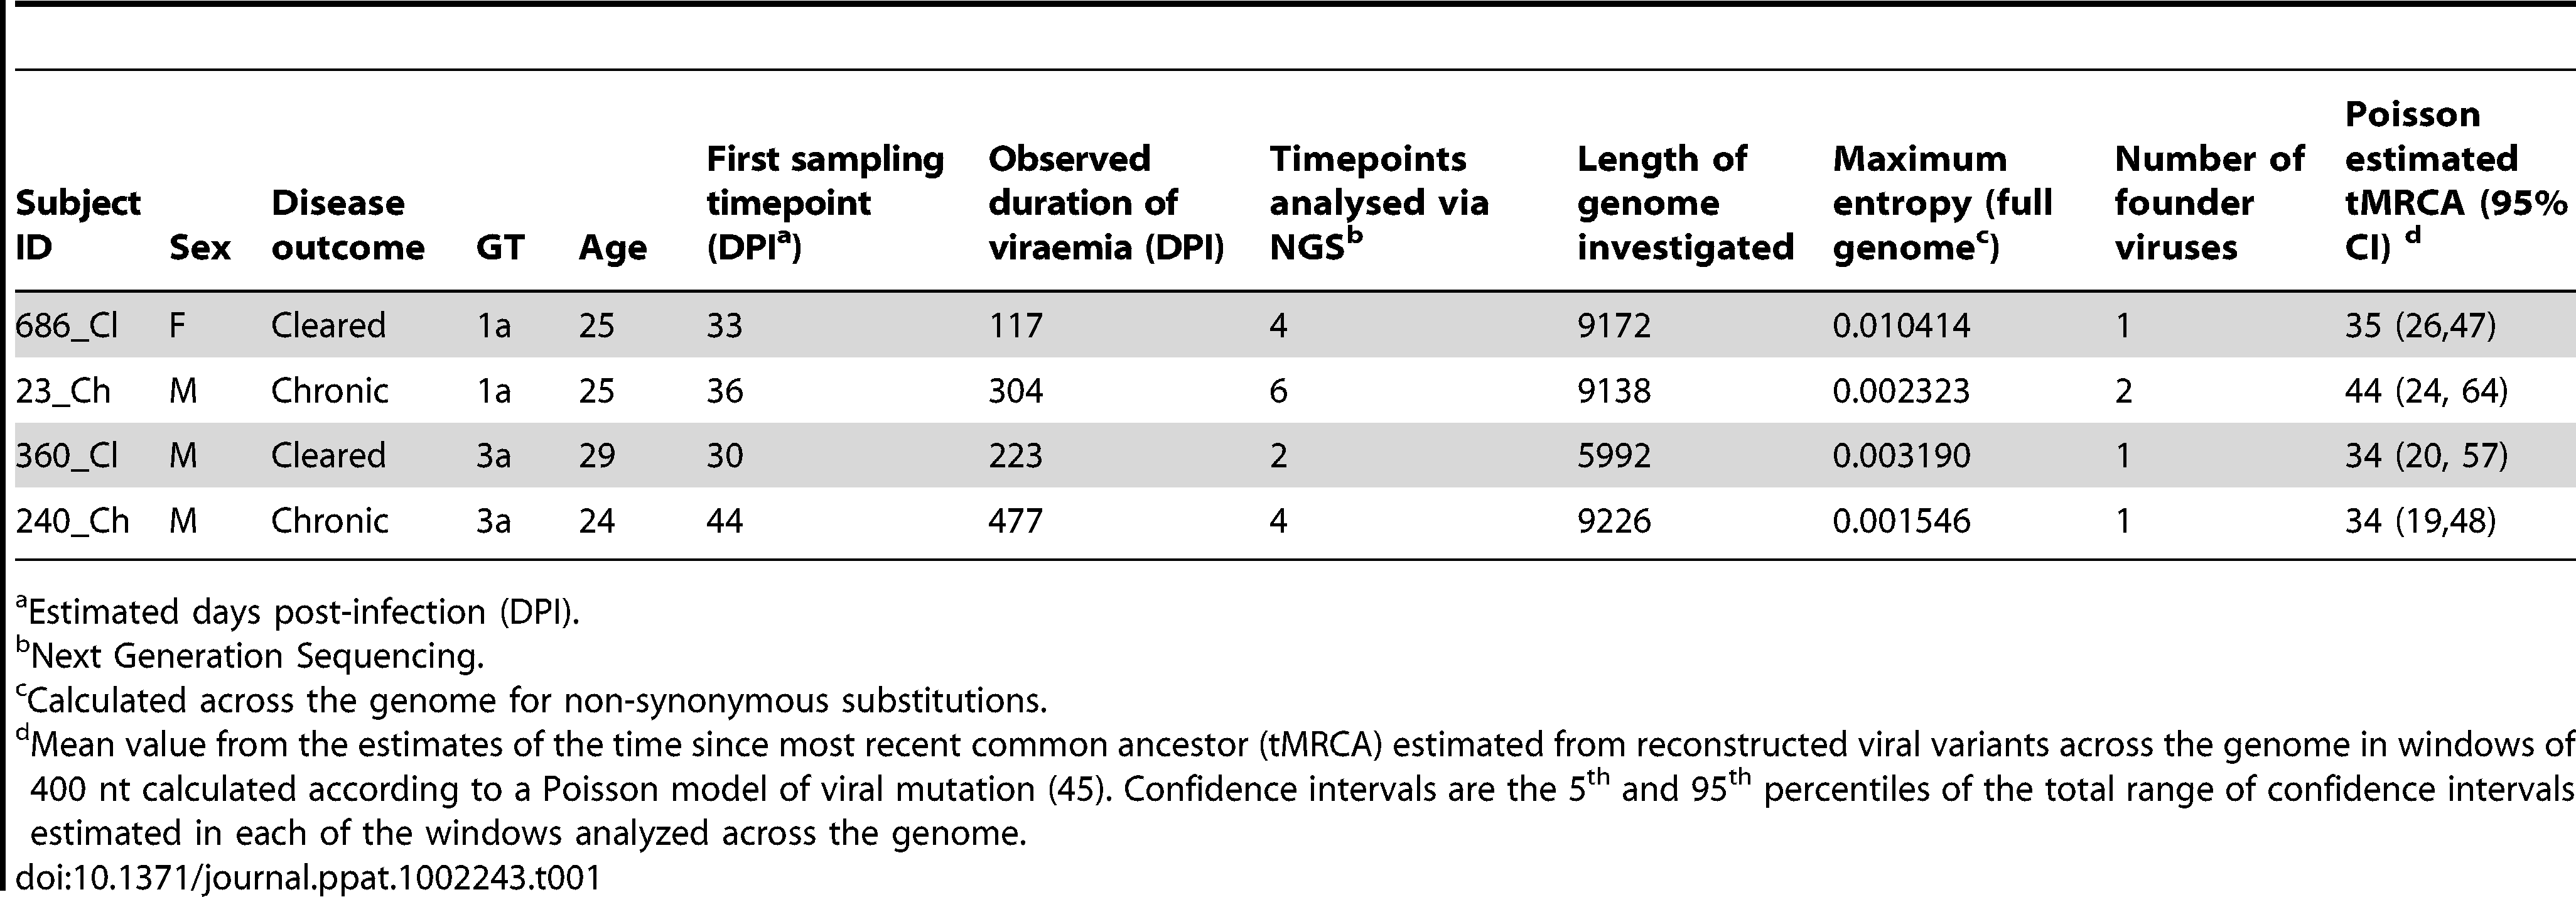 Subject characteristics, number of founder viruses, and estimates of the time since the most recent common ancestor (tMRCA).